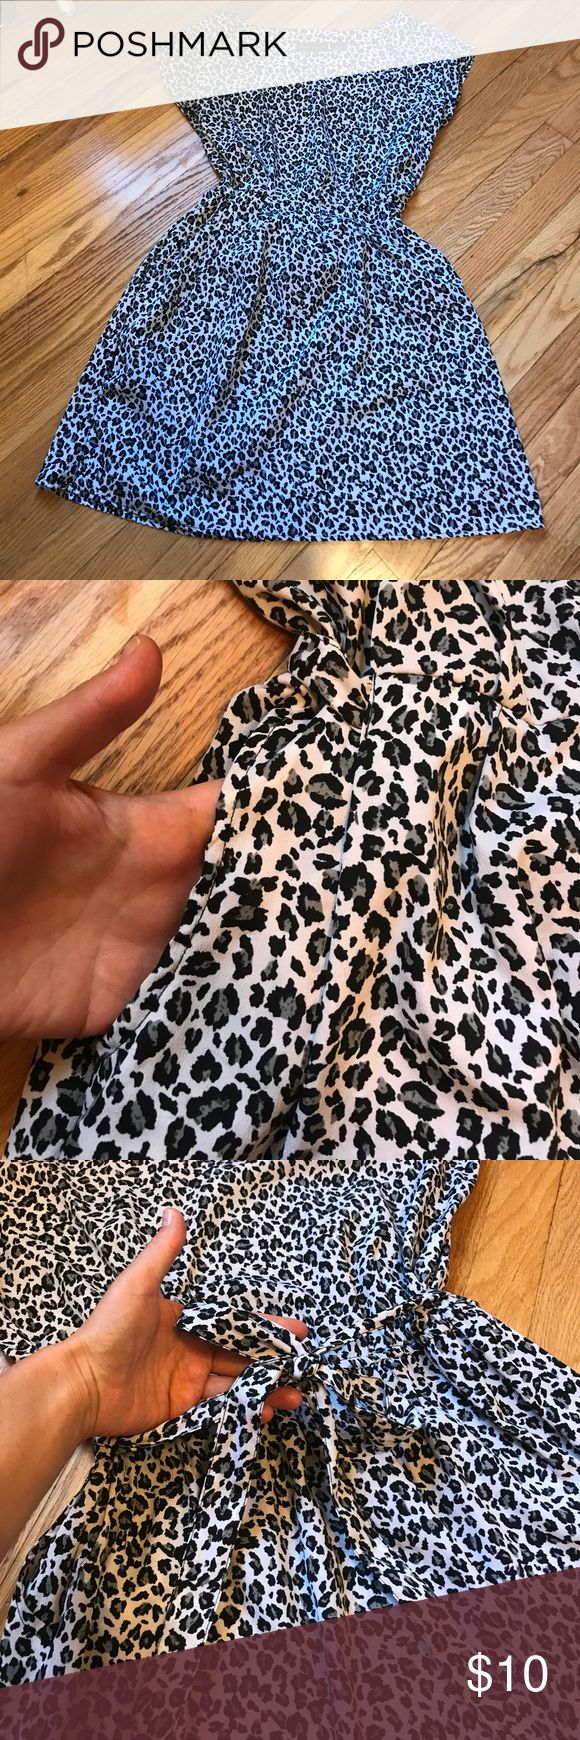 Animal print mini dress with a tie and two pockets Elastic at the back plus a tie to regulate the waist size. Two pockets on both sides. Very light dress. 18.5 inches from waist to bottom of the dress. Dresses Mini